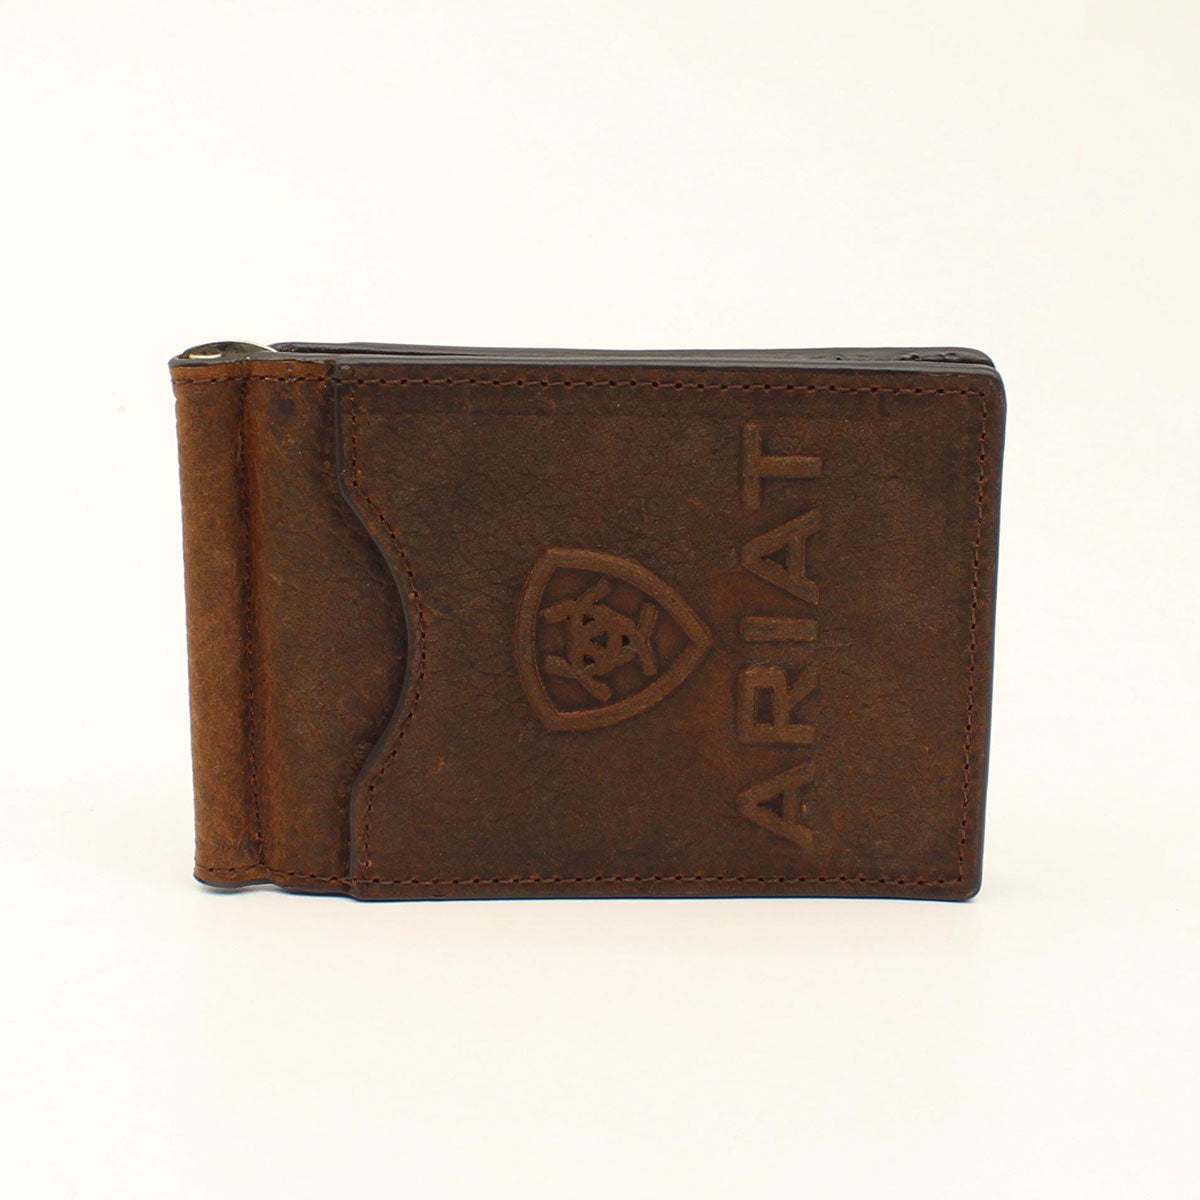 Ariat Western Mens Money Clip Card Case Leather Calf Hair Inlay Brown A3543944